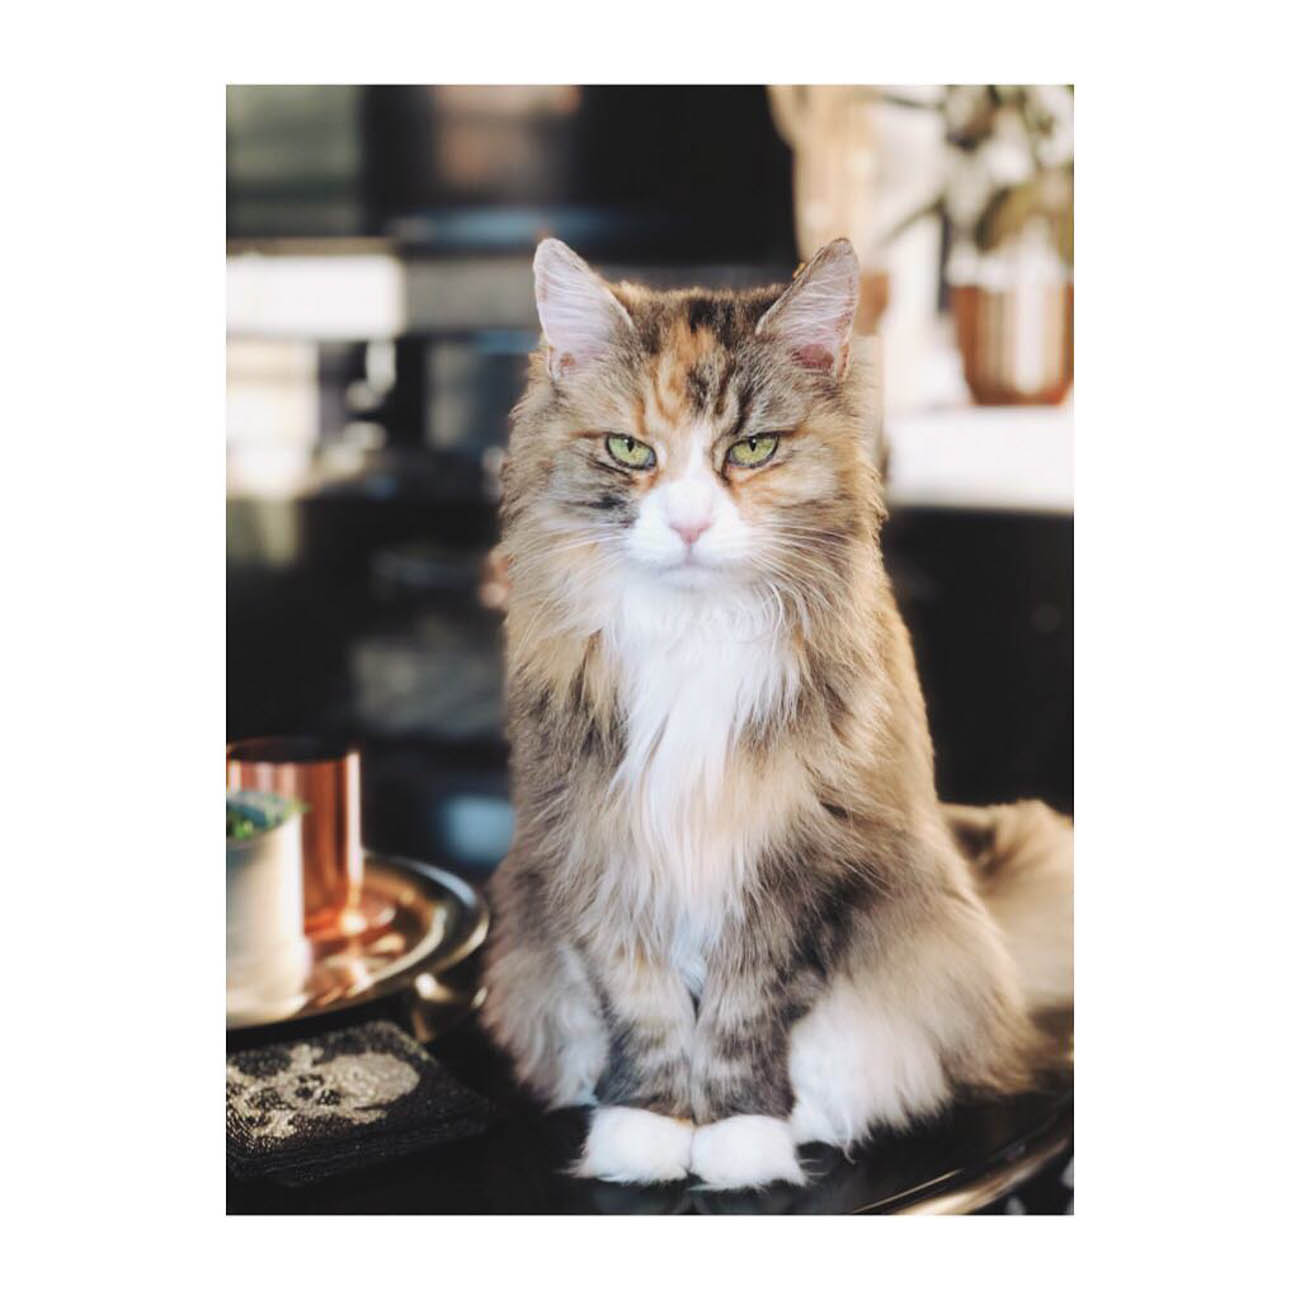 B.B. is an adopted Siberian Forest cat. She's equals parts sweet and sass. / Image courtesy of Instagram user @beebsieboo // Published: 1.13.19